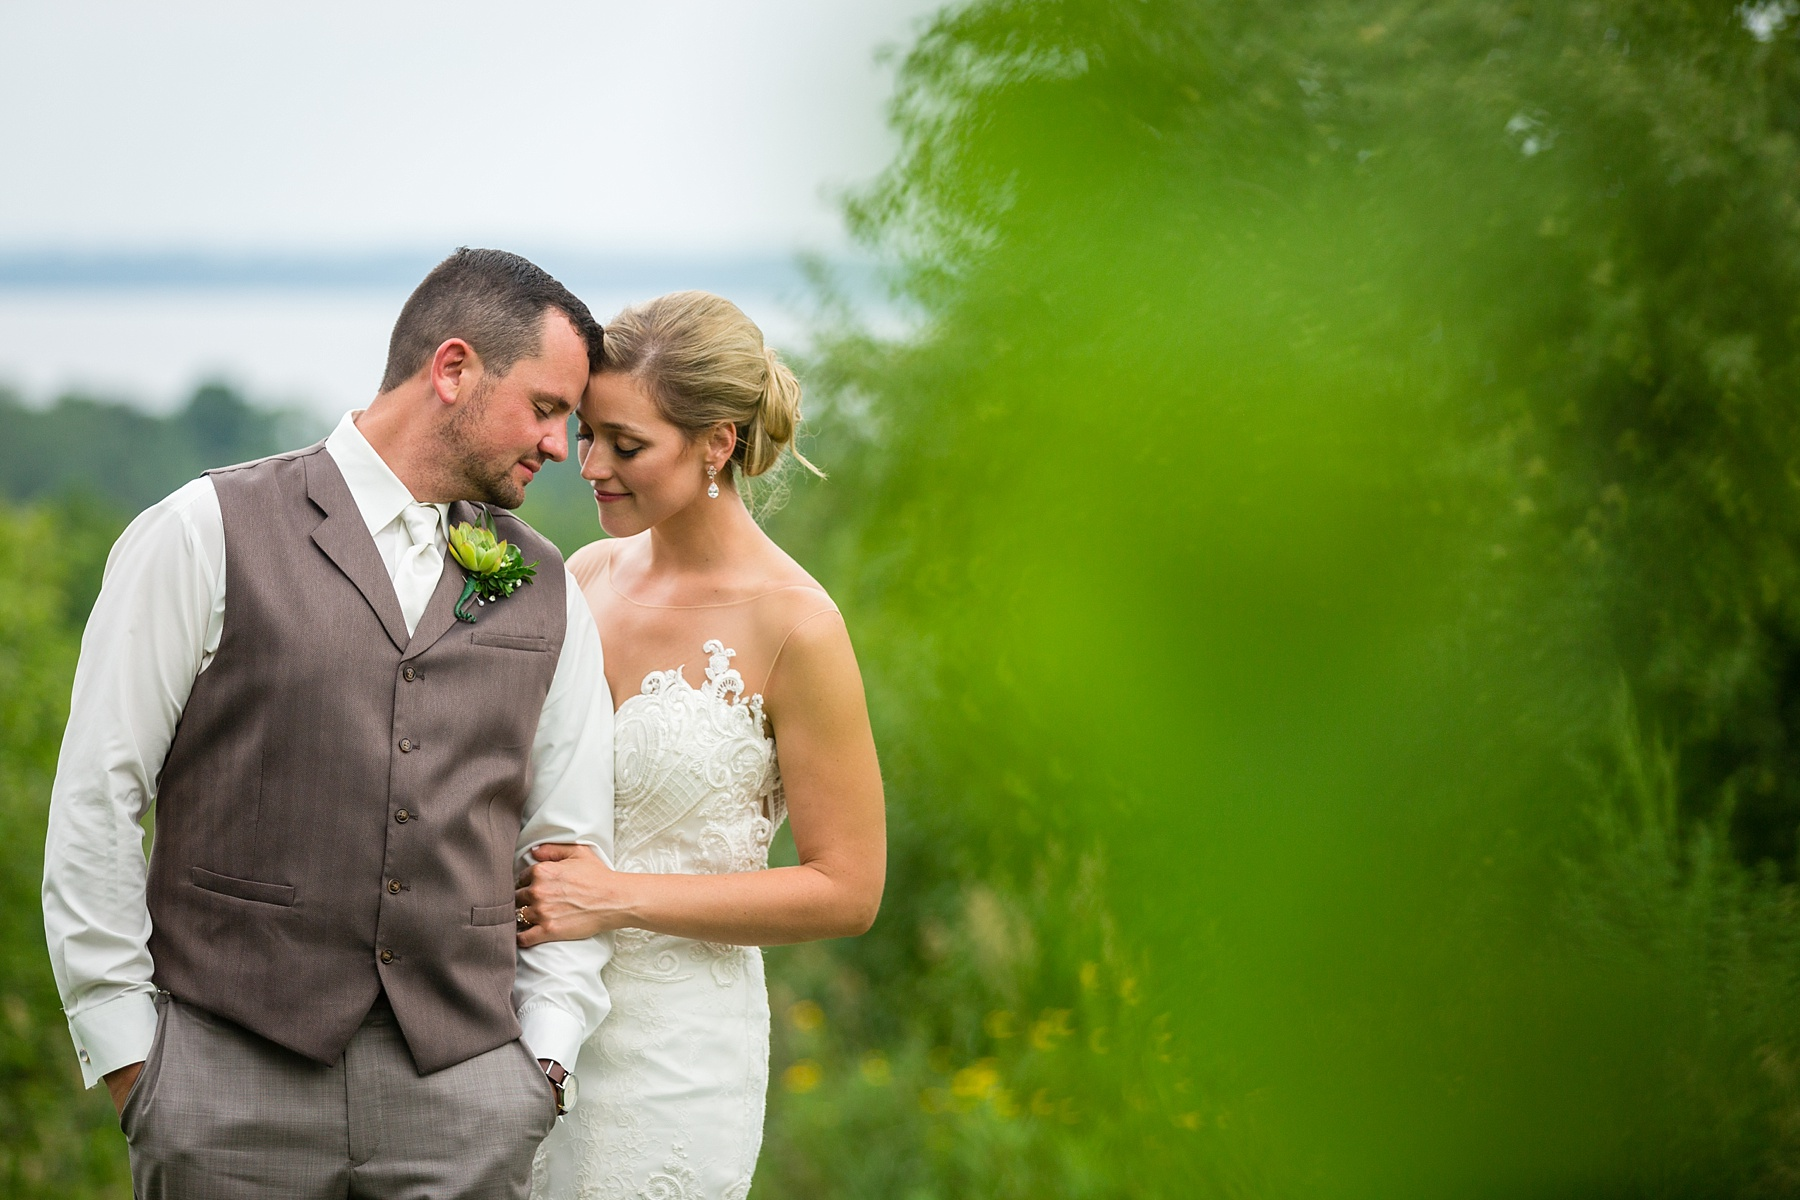 Brandon_Shafer_Photography_Lauren_Vasile_Ciccone_Vineyard_Suttons_Bay_Wedding_0058.jpg